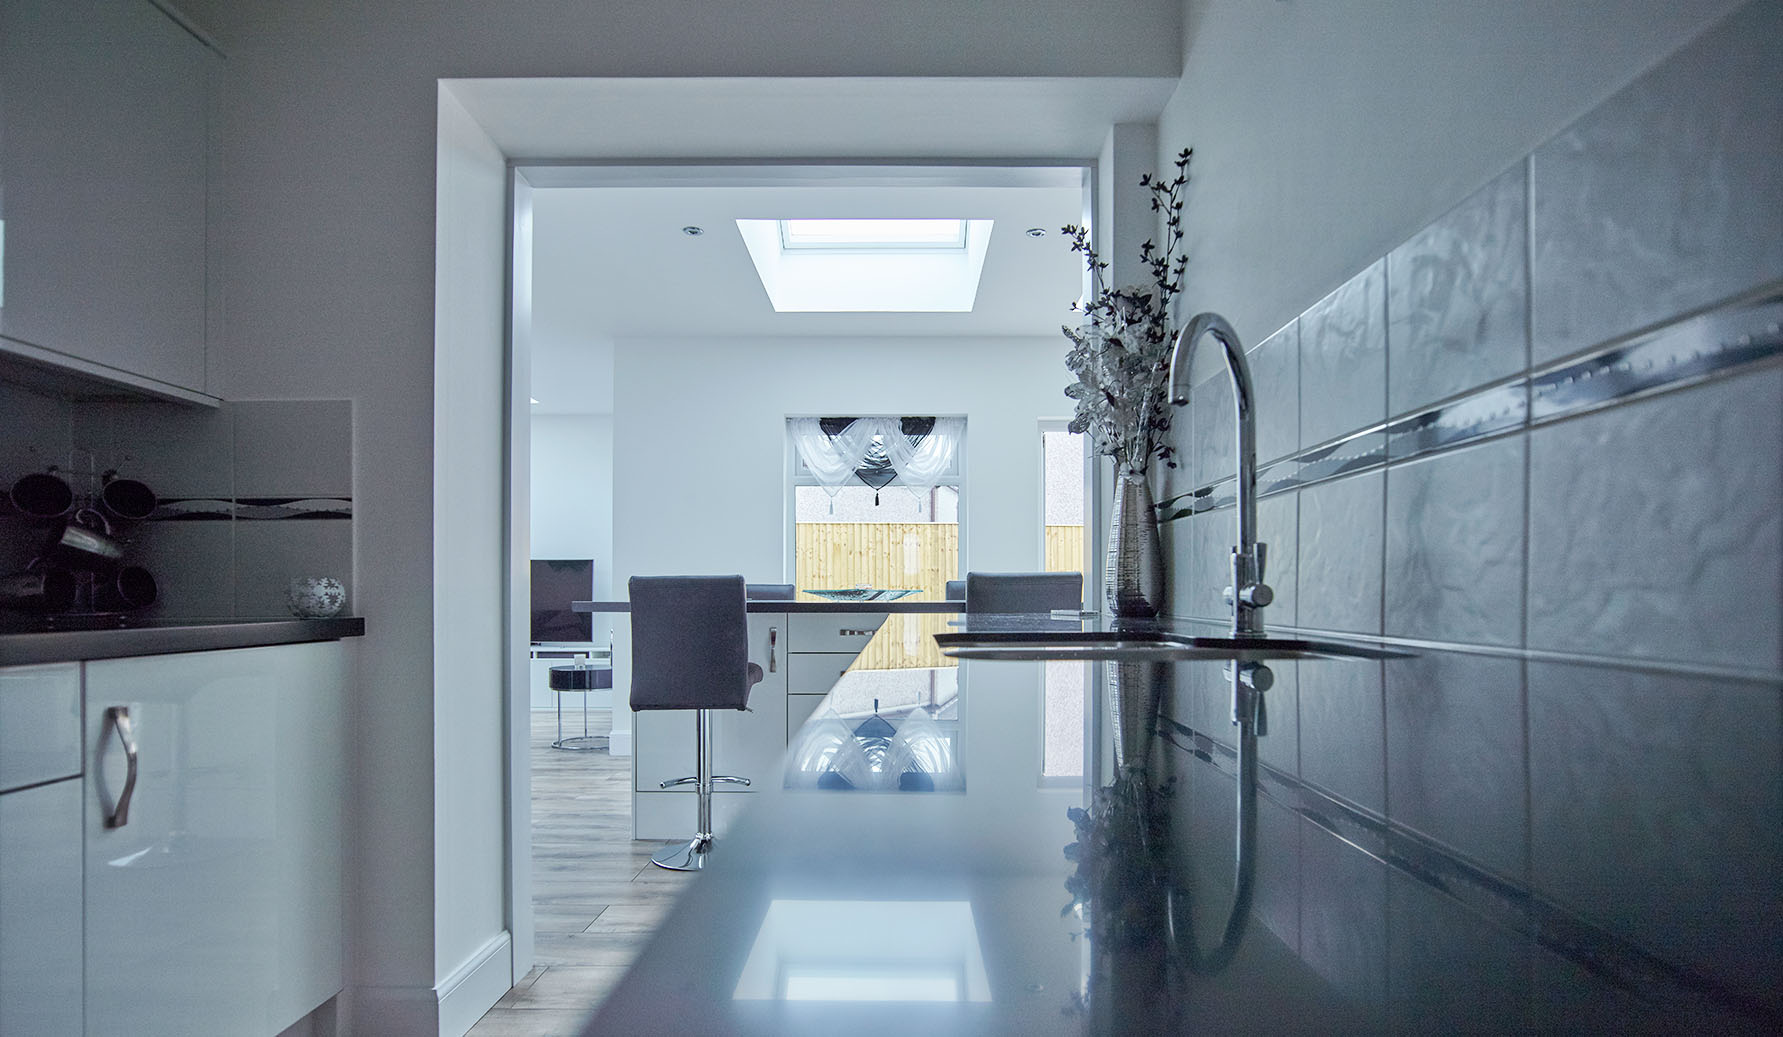 R.Doig, Specialists In Kitchen Fitting, Kitchen Design In Perth Scotland